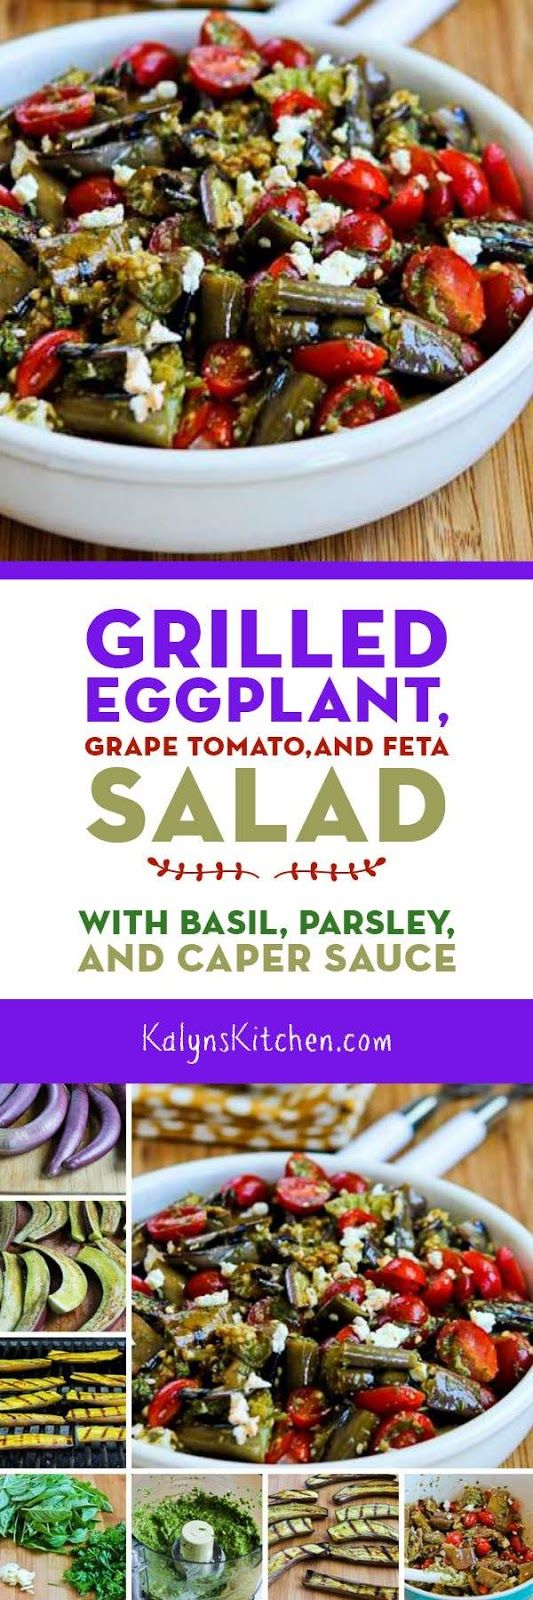 PLEASE don't be skeptical about grilled eggplant, because I promise you'll love this Grilled Eggplant and Grape Tomato Salad with Feta, Basil, Parsley, and Caper Sauce, and this tasty salad with eggplant and tomatoes is low-carb, gluten-free, South Beach Diet friendly, and perfect for Meatless Monday! [found on KalynsKitchen.com]